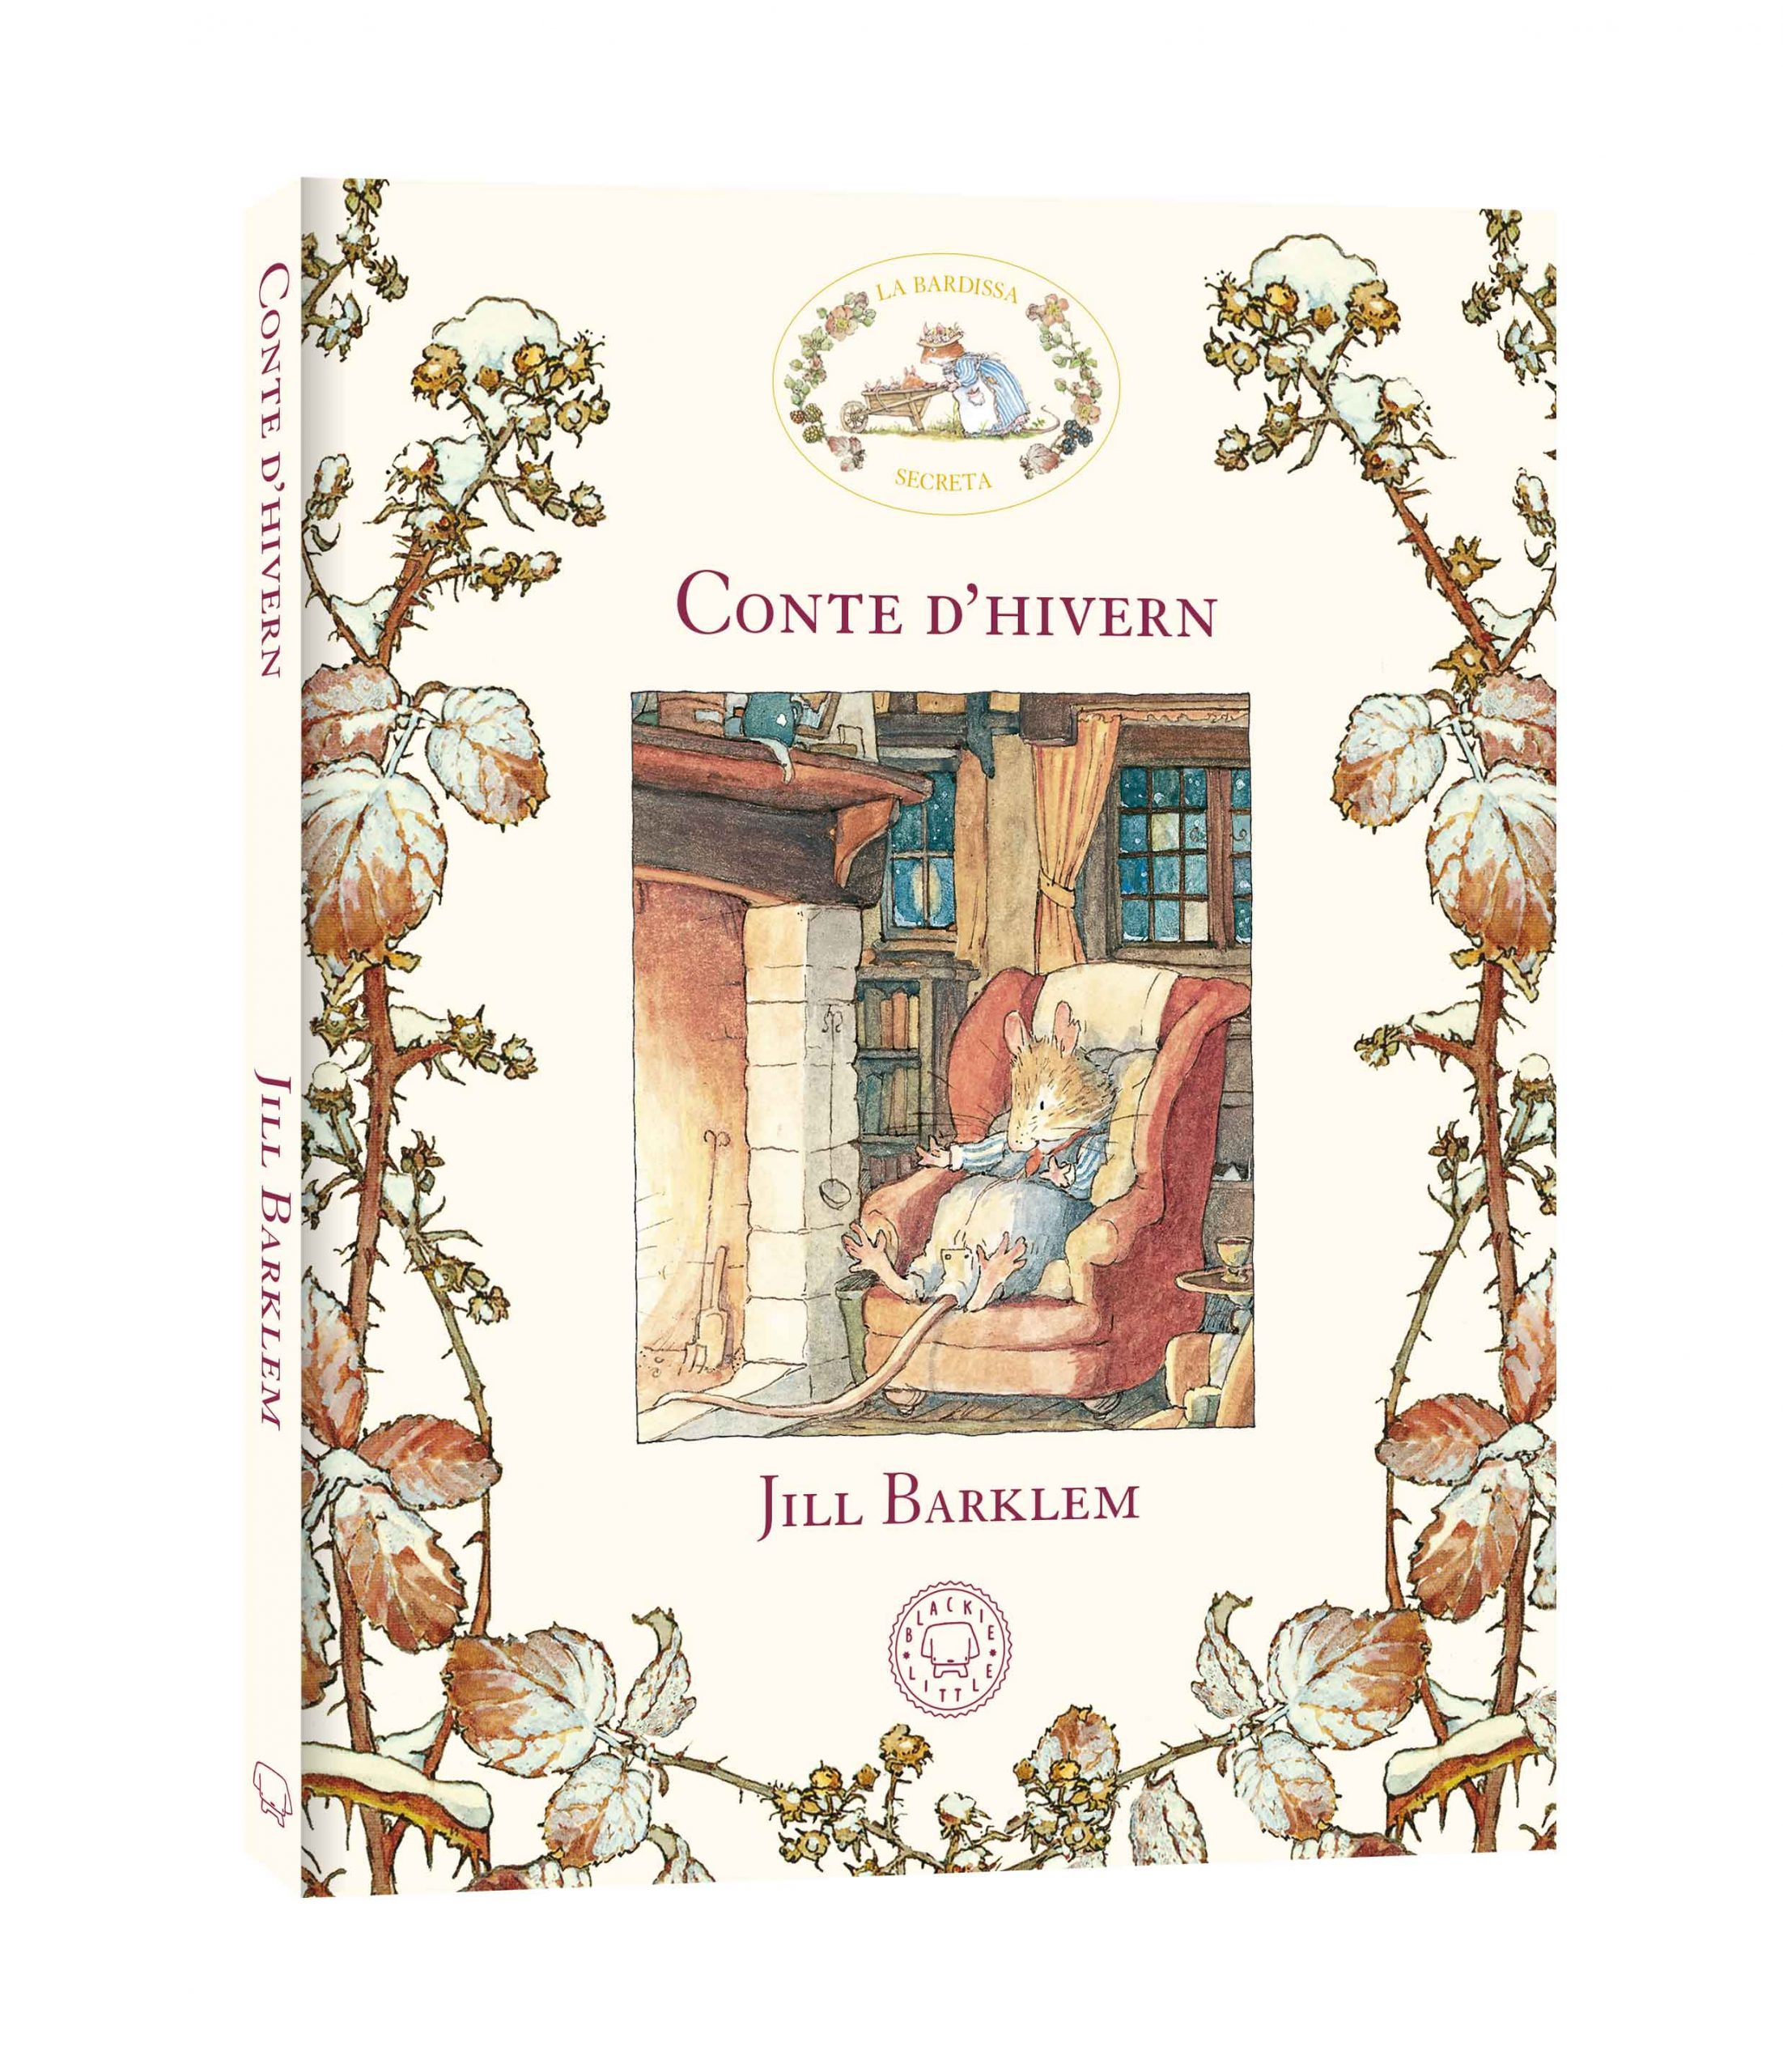 Conte d'hivern Brambly Hedge Catalan Translations